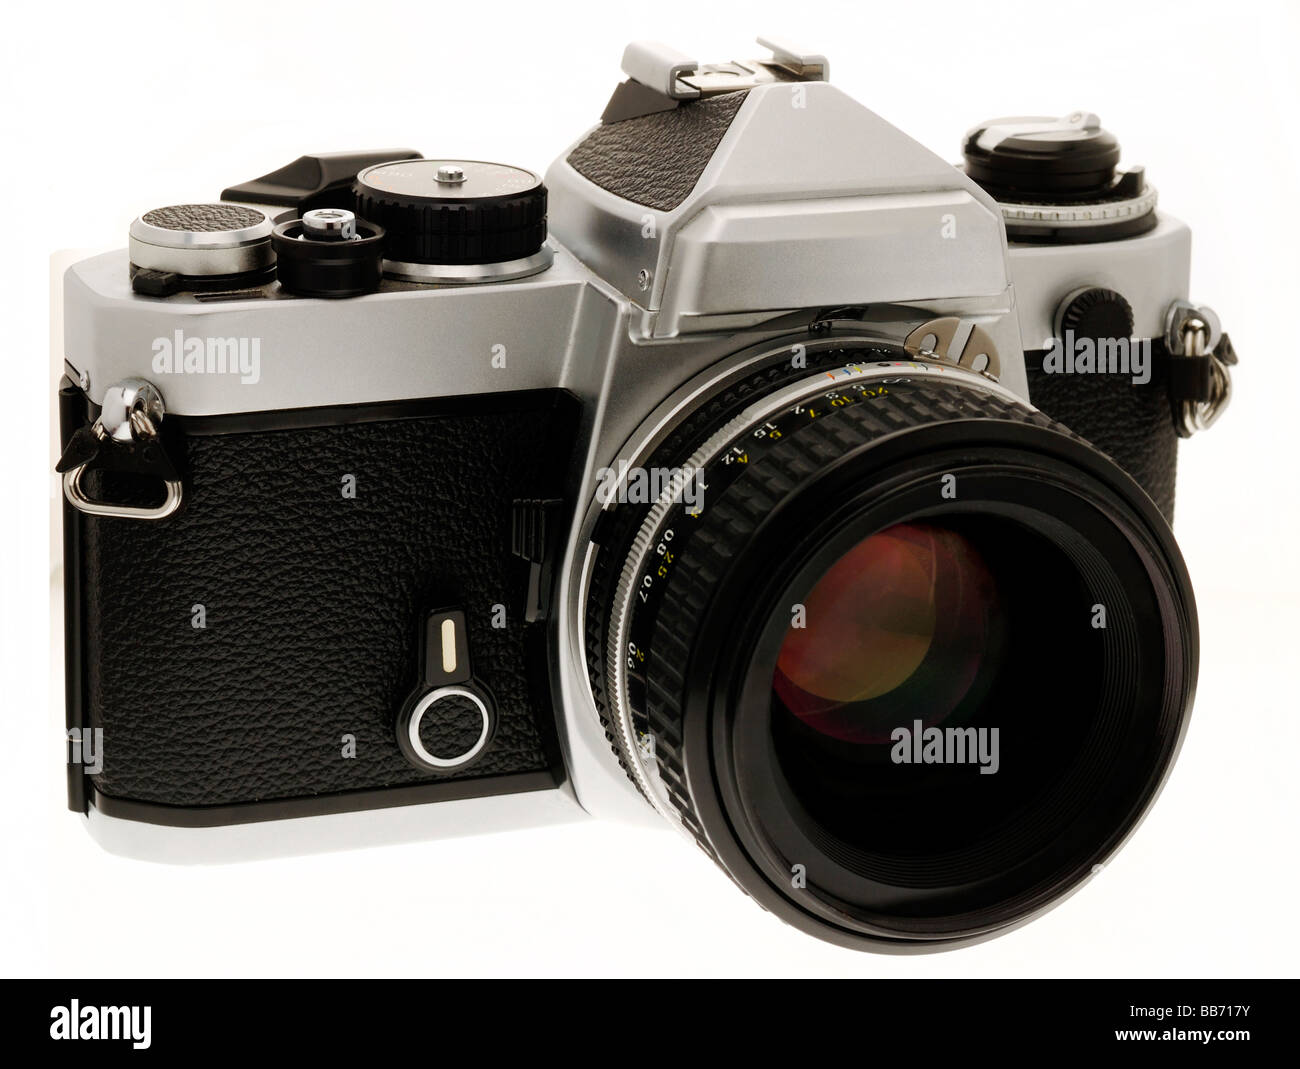 35mm Single Lens Reflex Camera - Stock Image